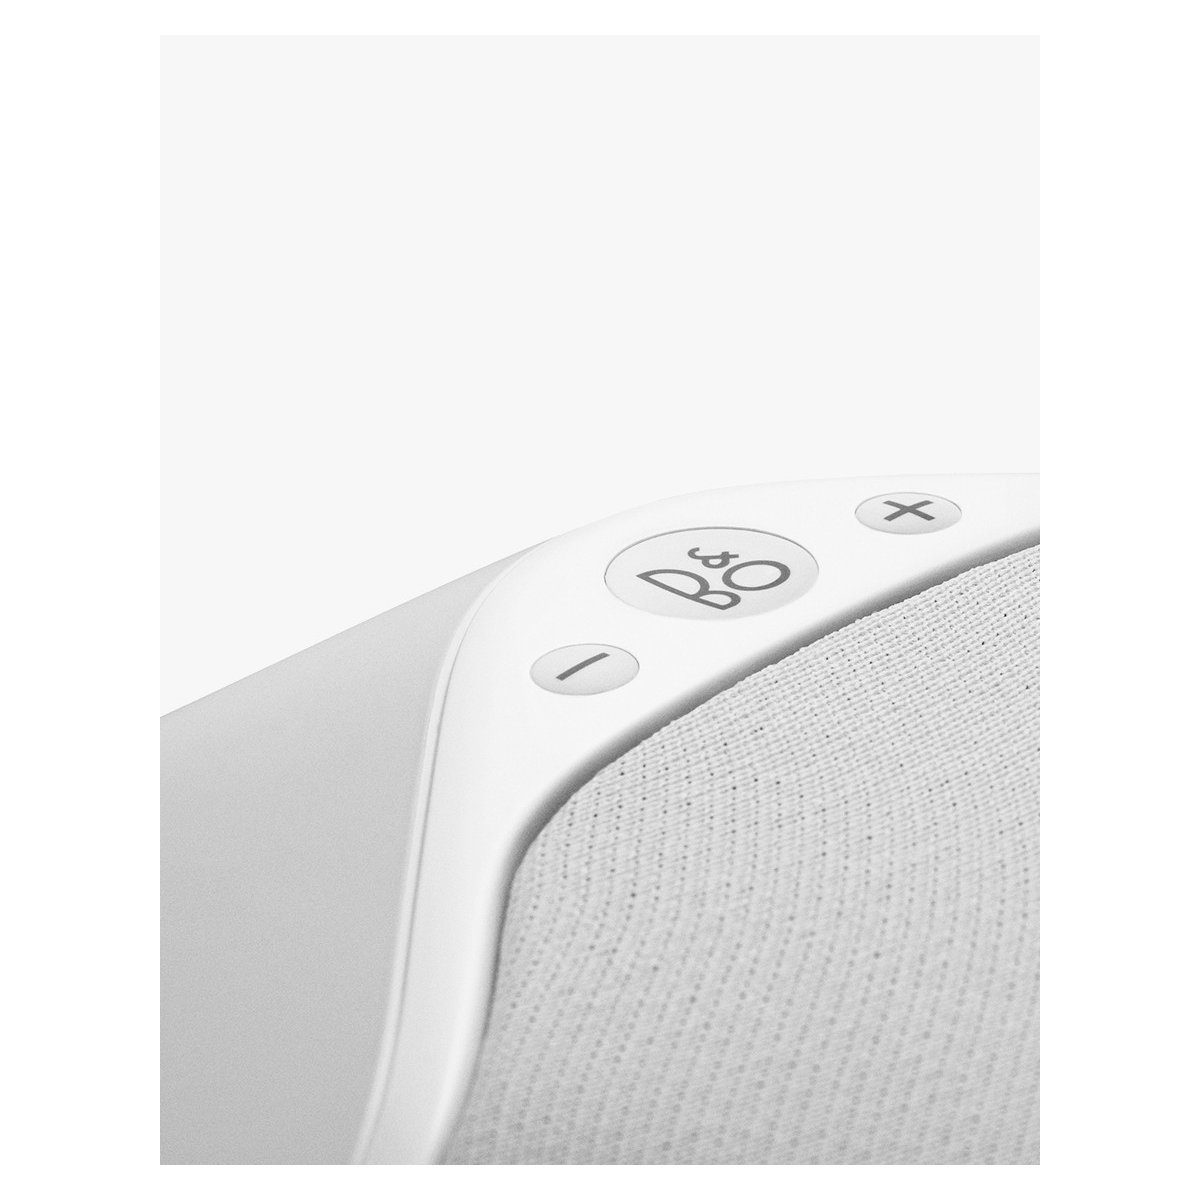 B&O PLAY S3 in White